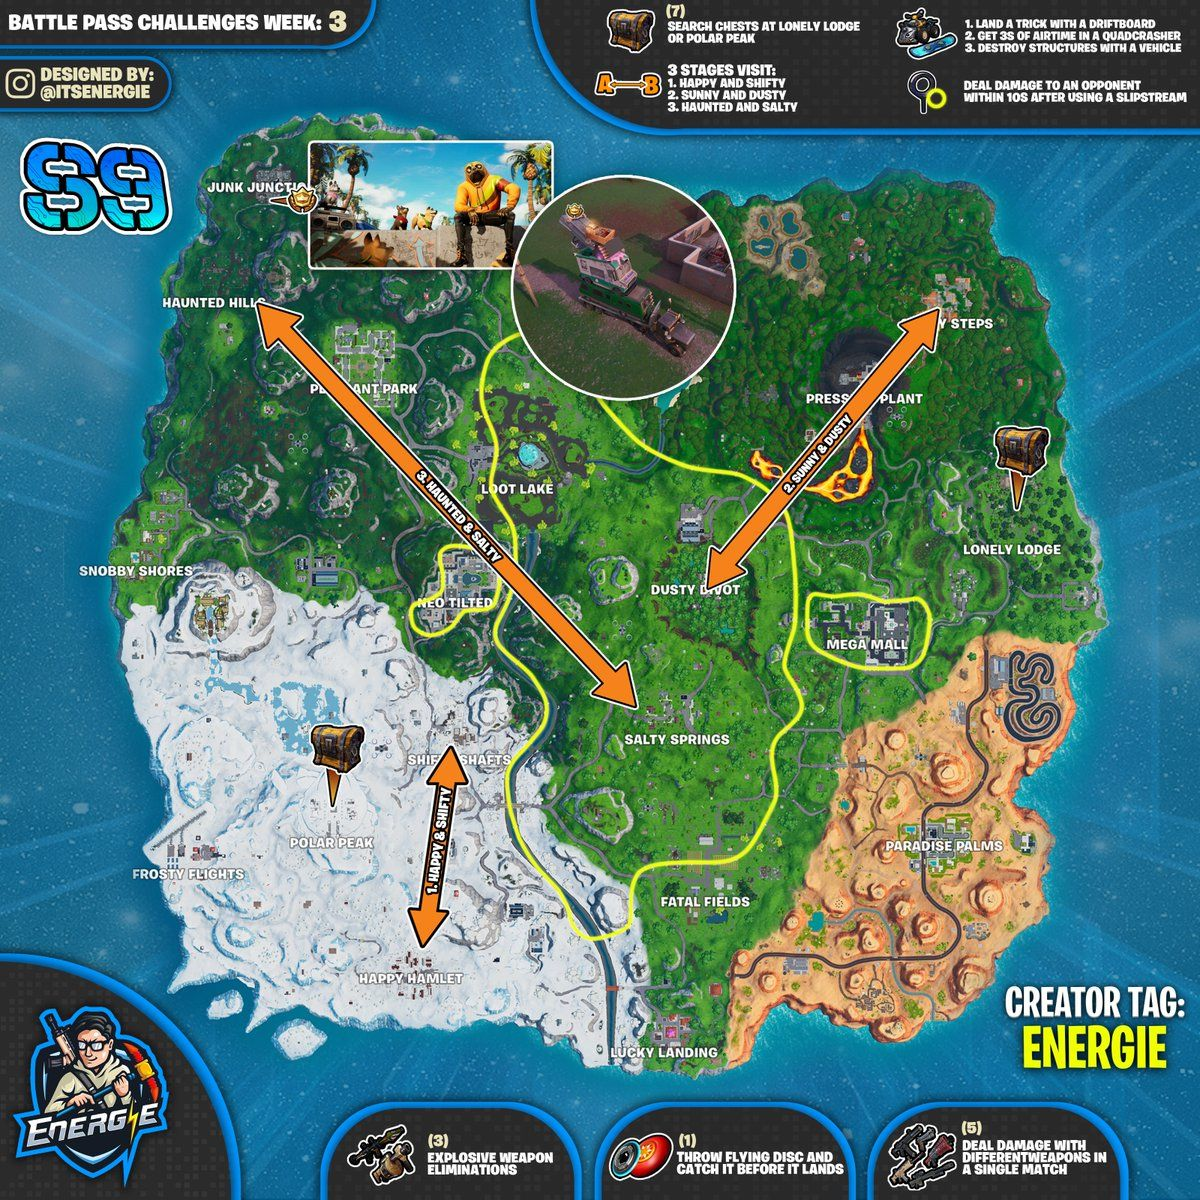 Fortnite Cheat Sheet Map For Season 9 Week 3 Challenges A New Set Of